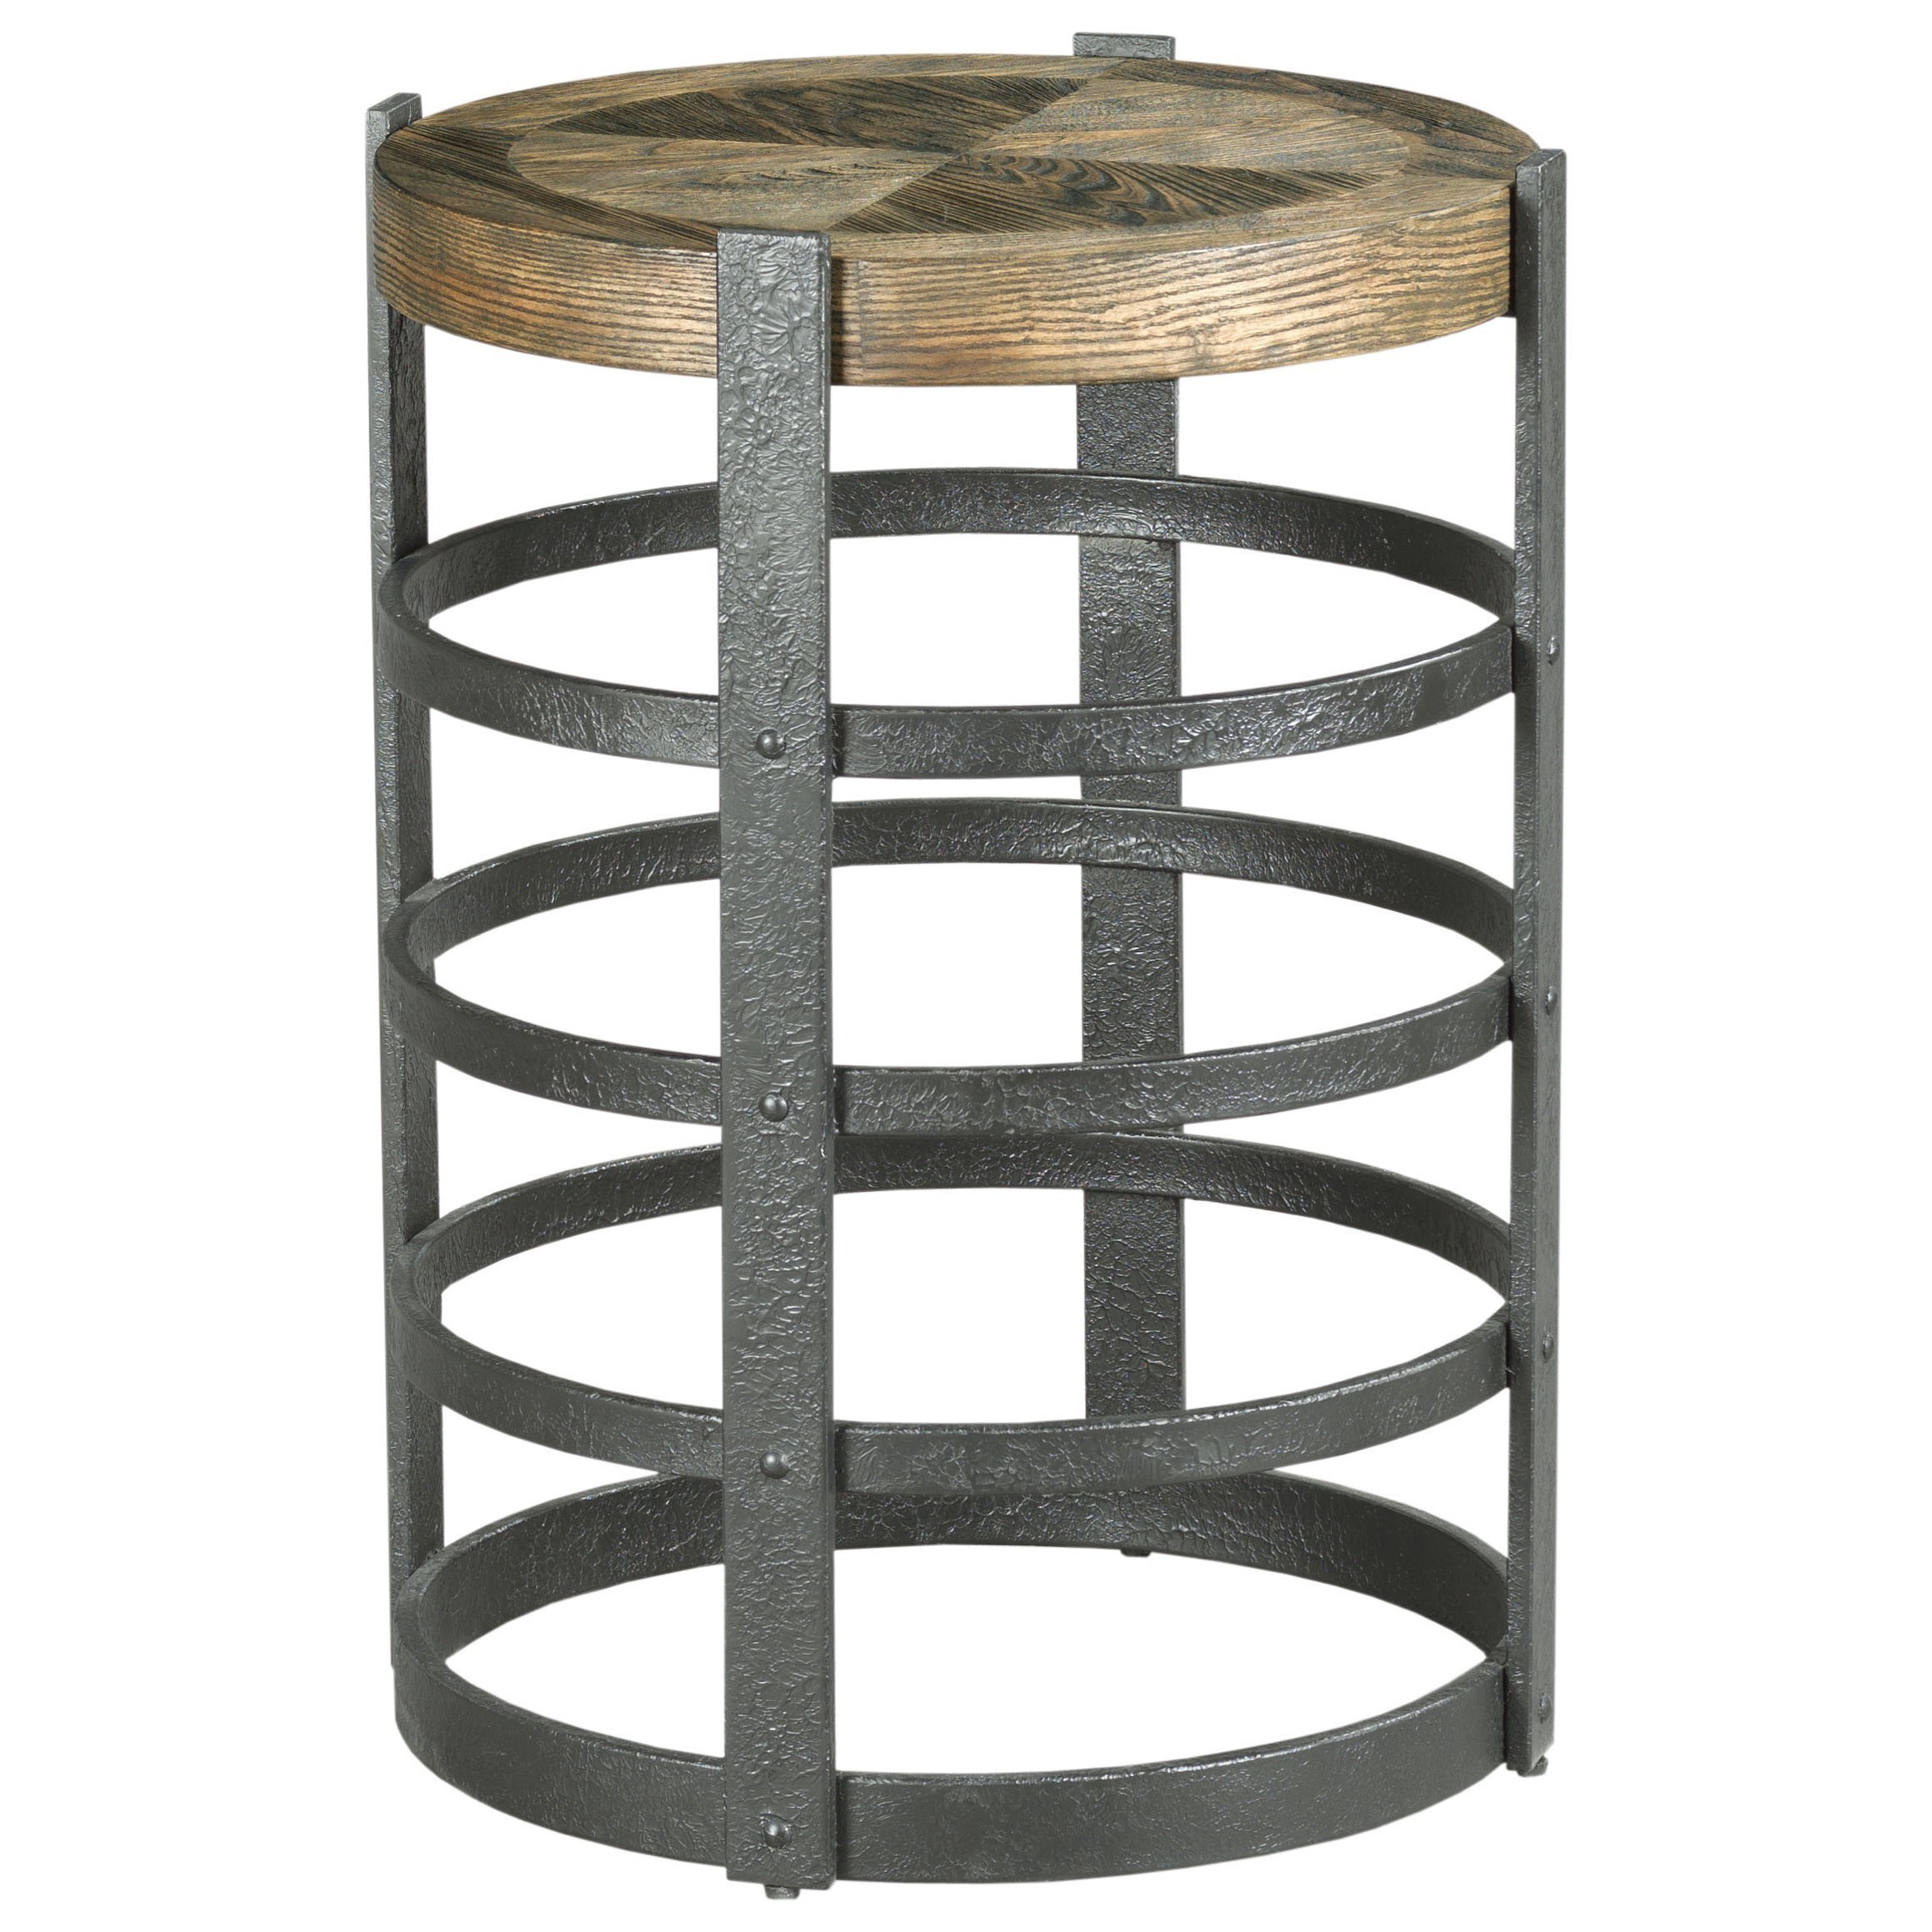 Hidden Treasures Barrel Strap End Table by Hammary at Jordan's Home Furnishings